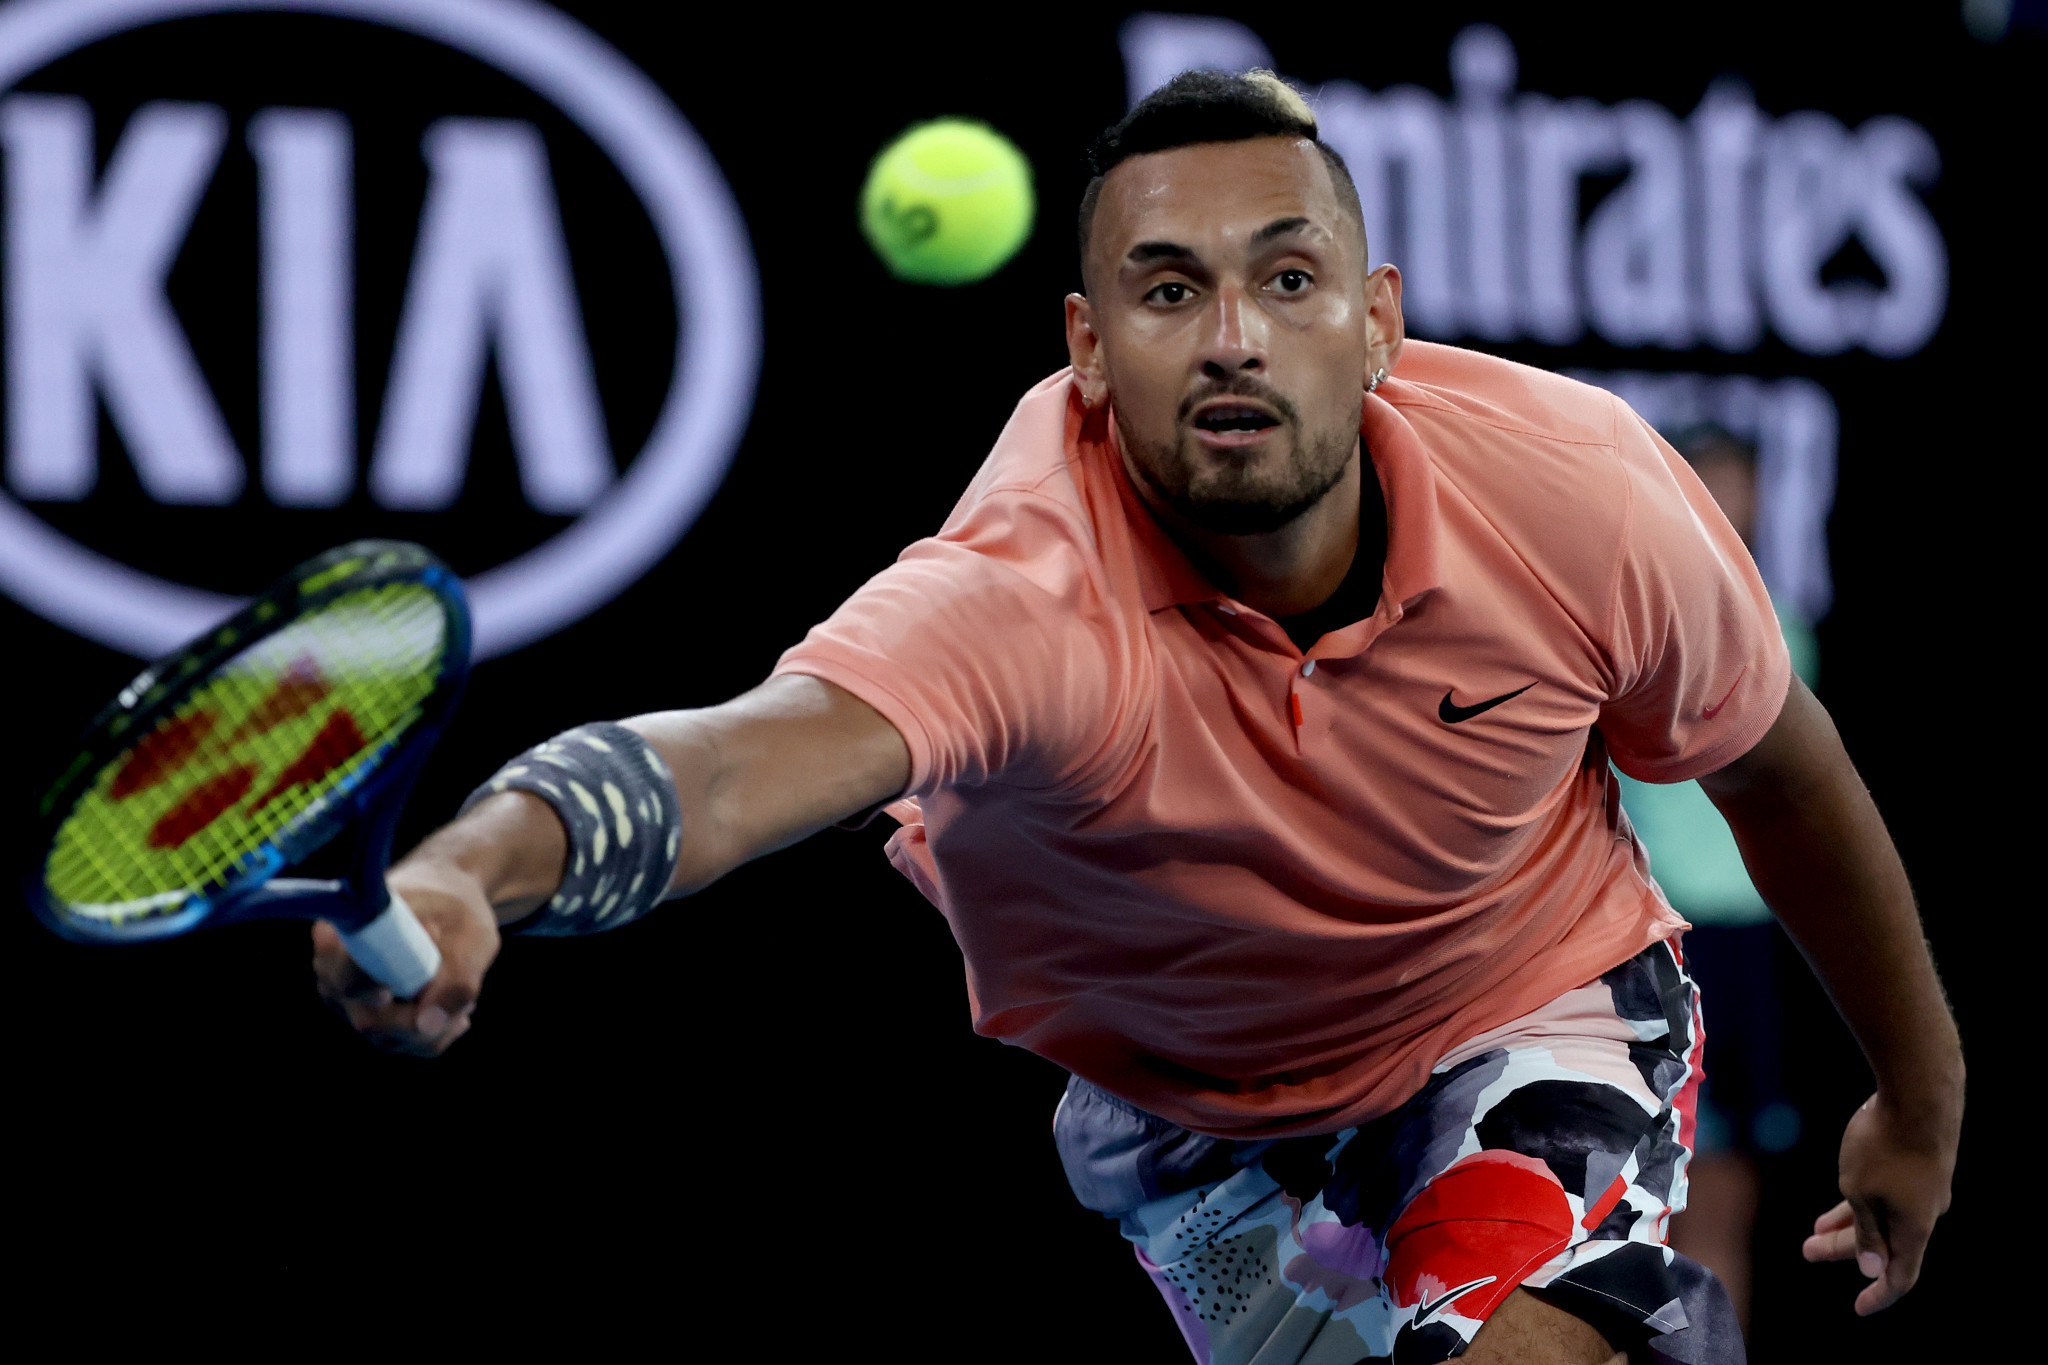 Home favourite Nick Kyrgios battled into the fourth round of the Australian Open ©Getty Images